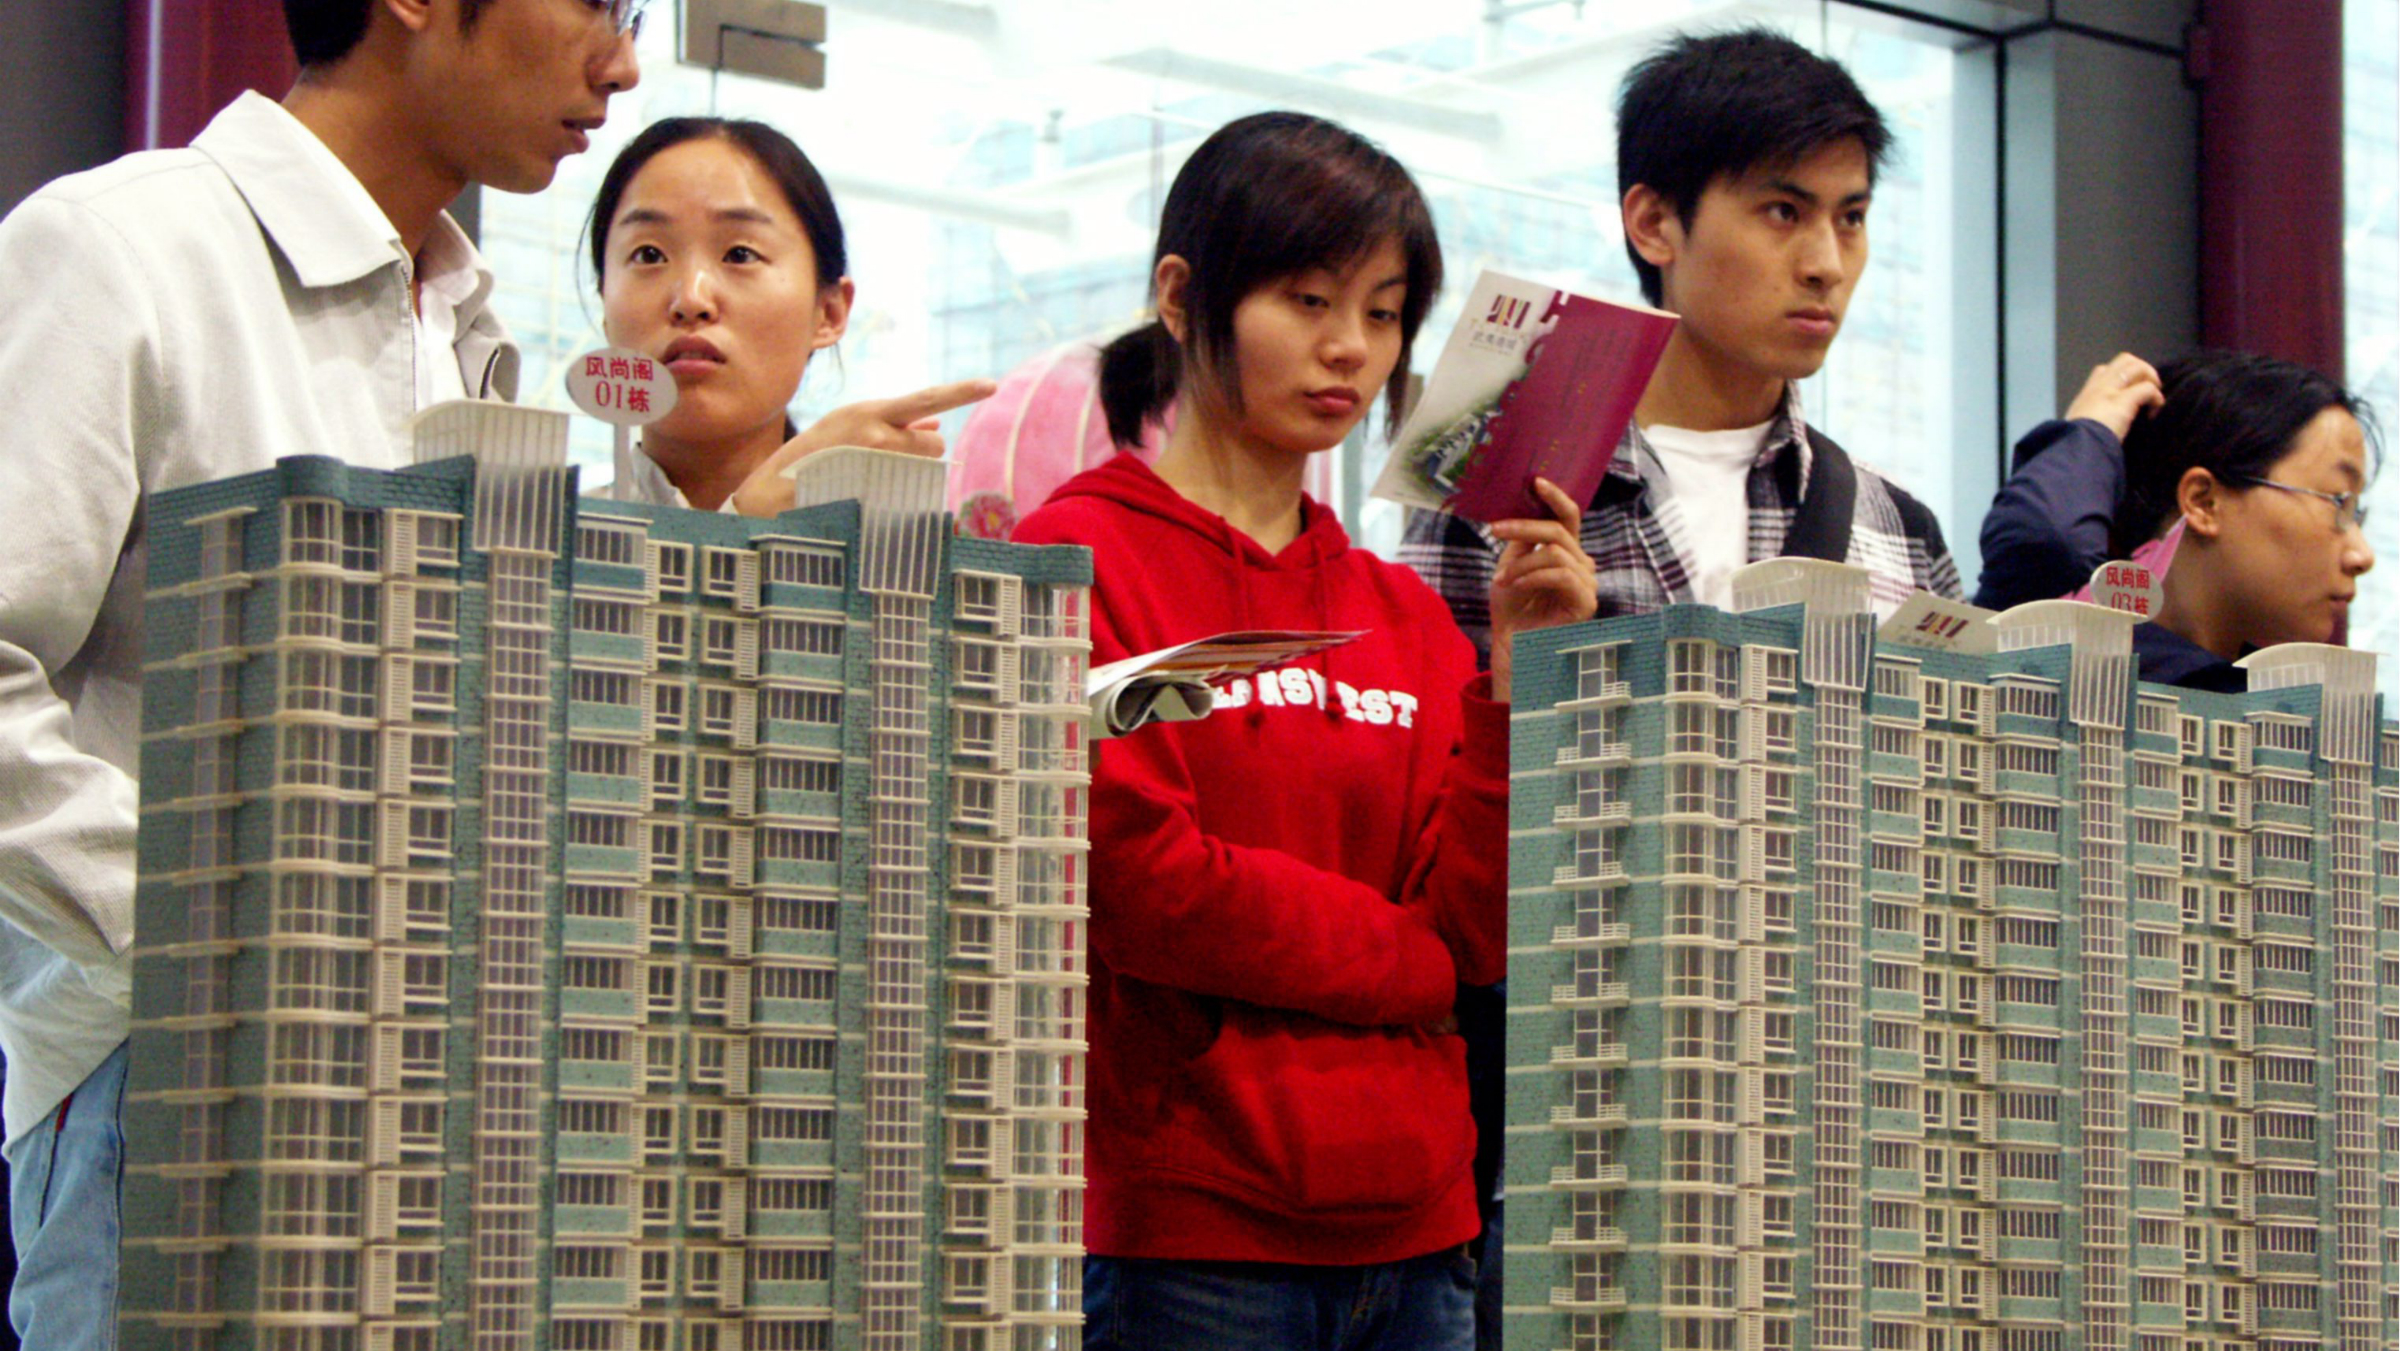 Chinese visitors look at model residential apartment buildings at a house fair in Nanjing city, east Chinas Jiangsu province, 8 April 2008. Chinese government on October 22 stepped in to bolster the ailing real estate market by lowering transaction taxes, reducing down payments and lowering mortgage rates. But analysts said the measures may not hold back price corrections because the current prices have surged far out of reach of many buyers. The Ministry of Finance and the central bank announced that property purchase tax would be lowered to 1 per cent for people buying their first home if it is smaller than 90sqm. The previous rate was 3 per cent, with those buying houses smaller than 140sqm paying 1.5 per cent. The new rate will be effective from November 1. For people buying their first home, the down payment ratio will be lowered to 20 per cent, and banks will be allowed to charge as low as 70 per cent of benchmark lending rates for such mortgages. Both measures are effective next Monday (October 27).(Imaginechina via AP Images